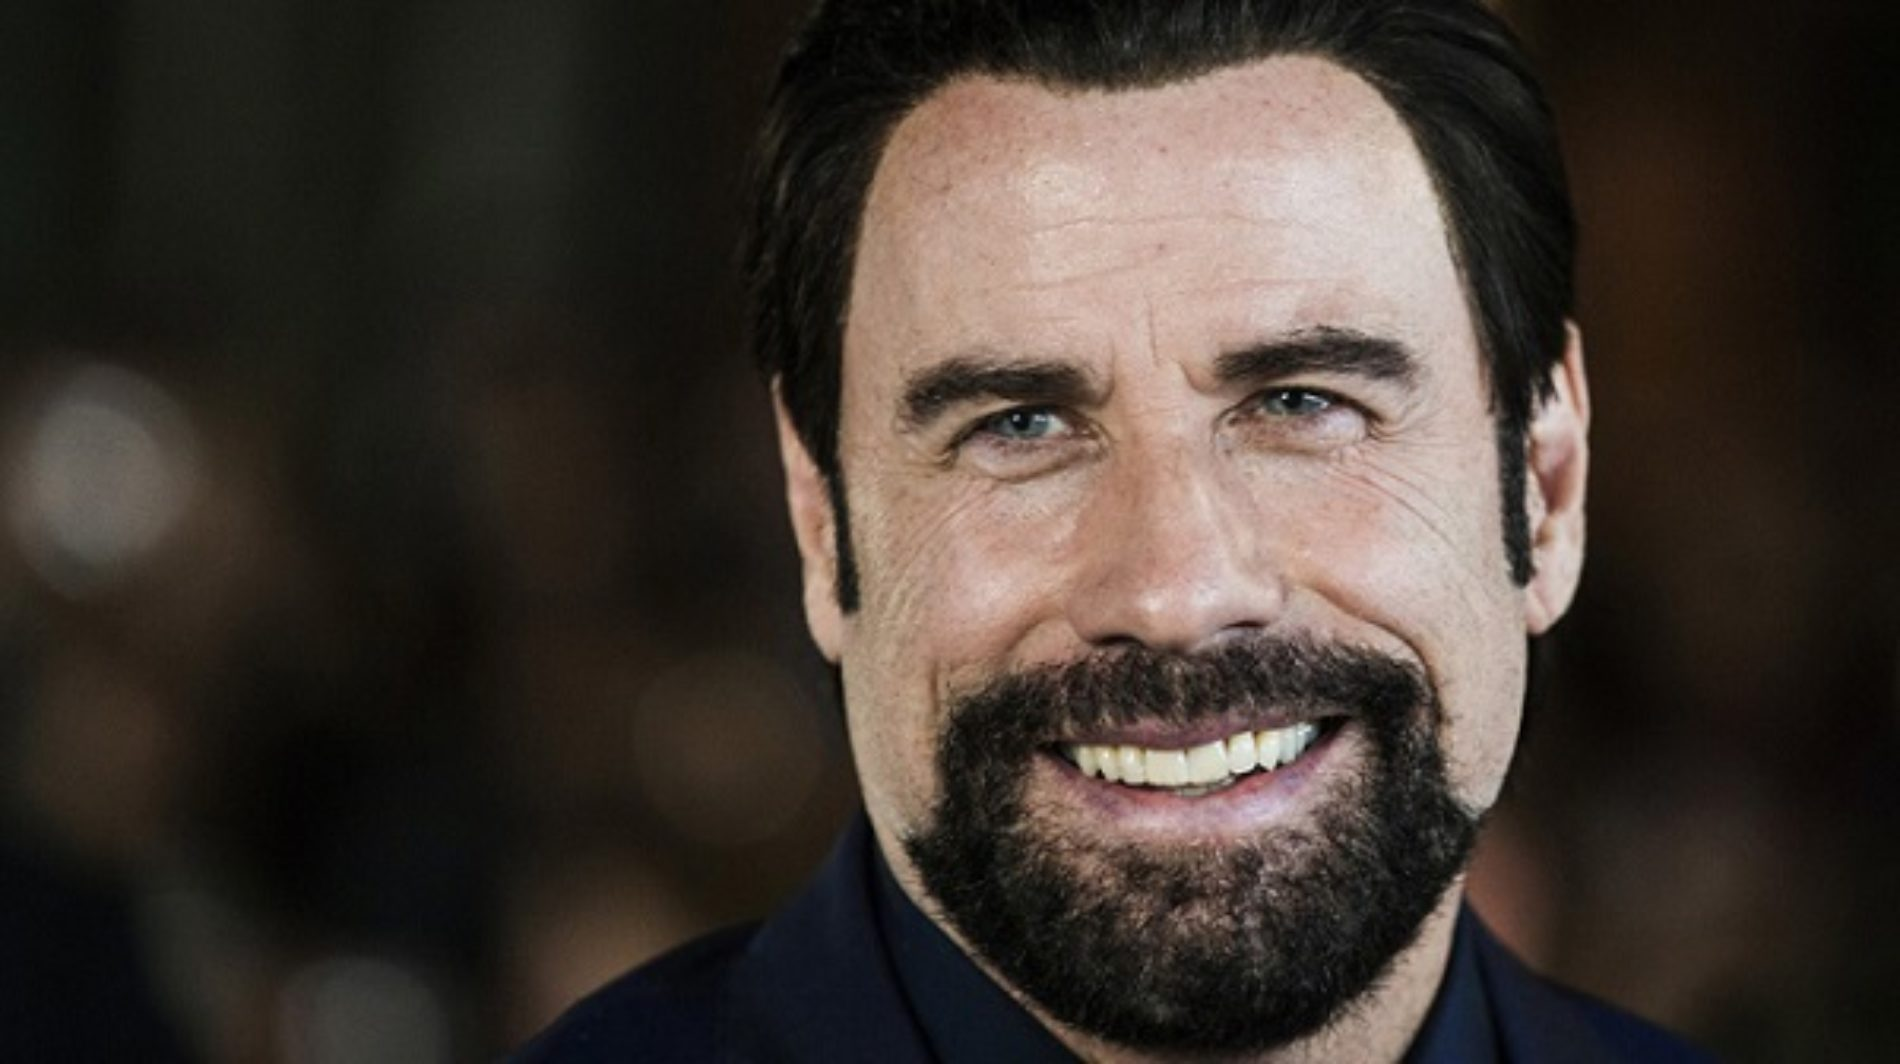 Upcoming Scientology Documentary 'Going Clear' Outs John Travolta…Again